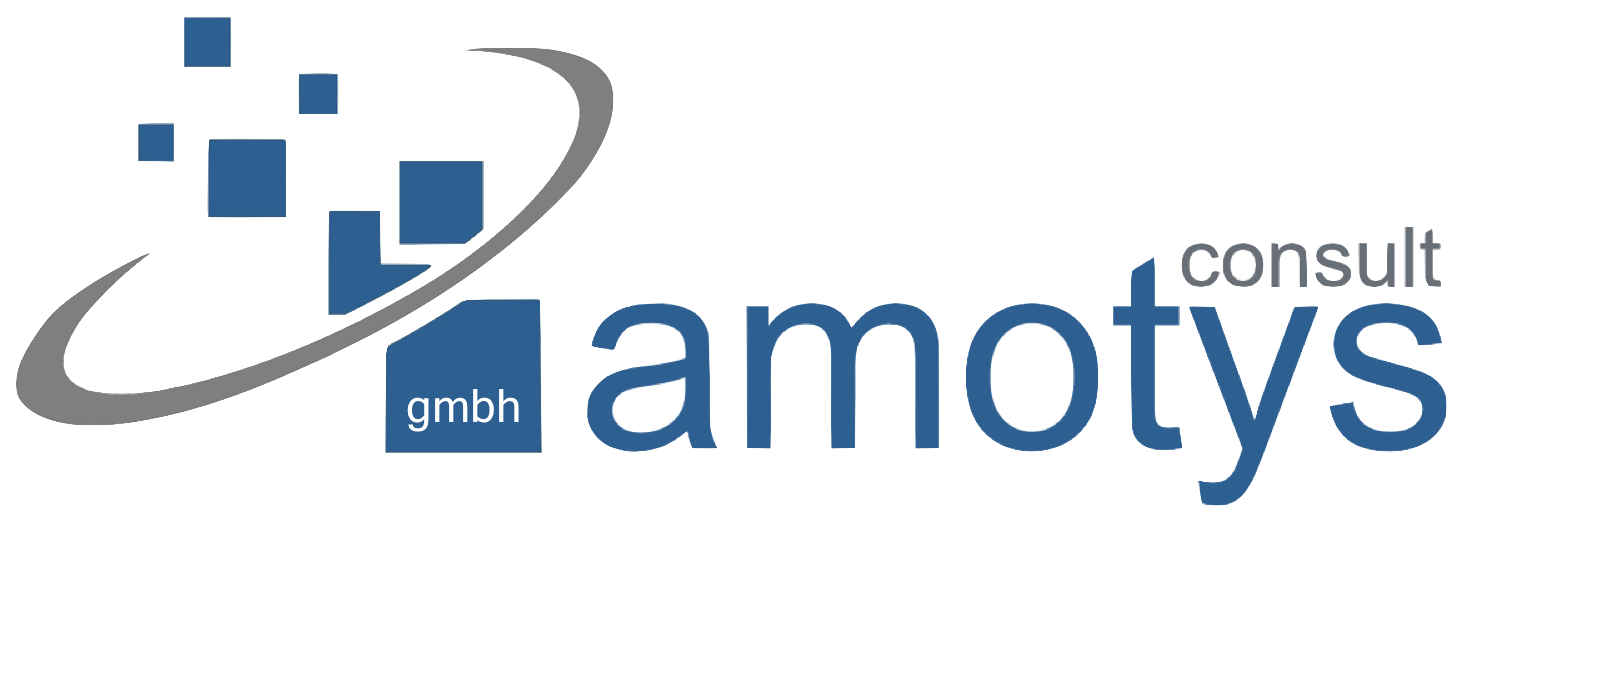 amotys consult GmbH